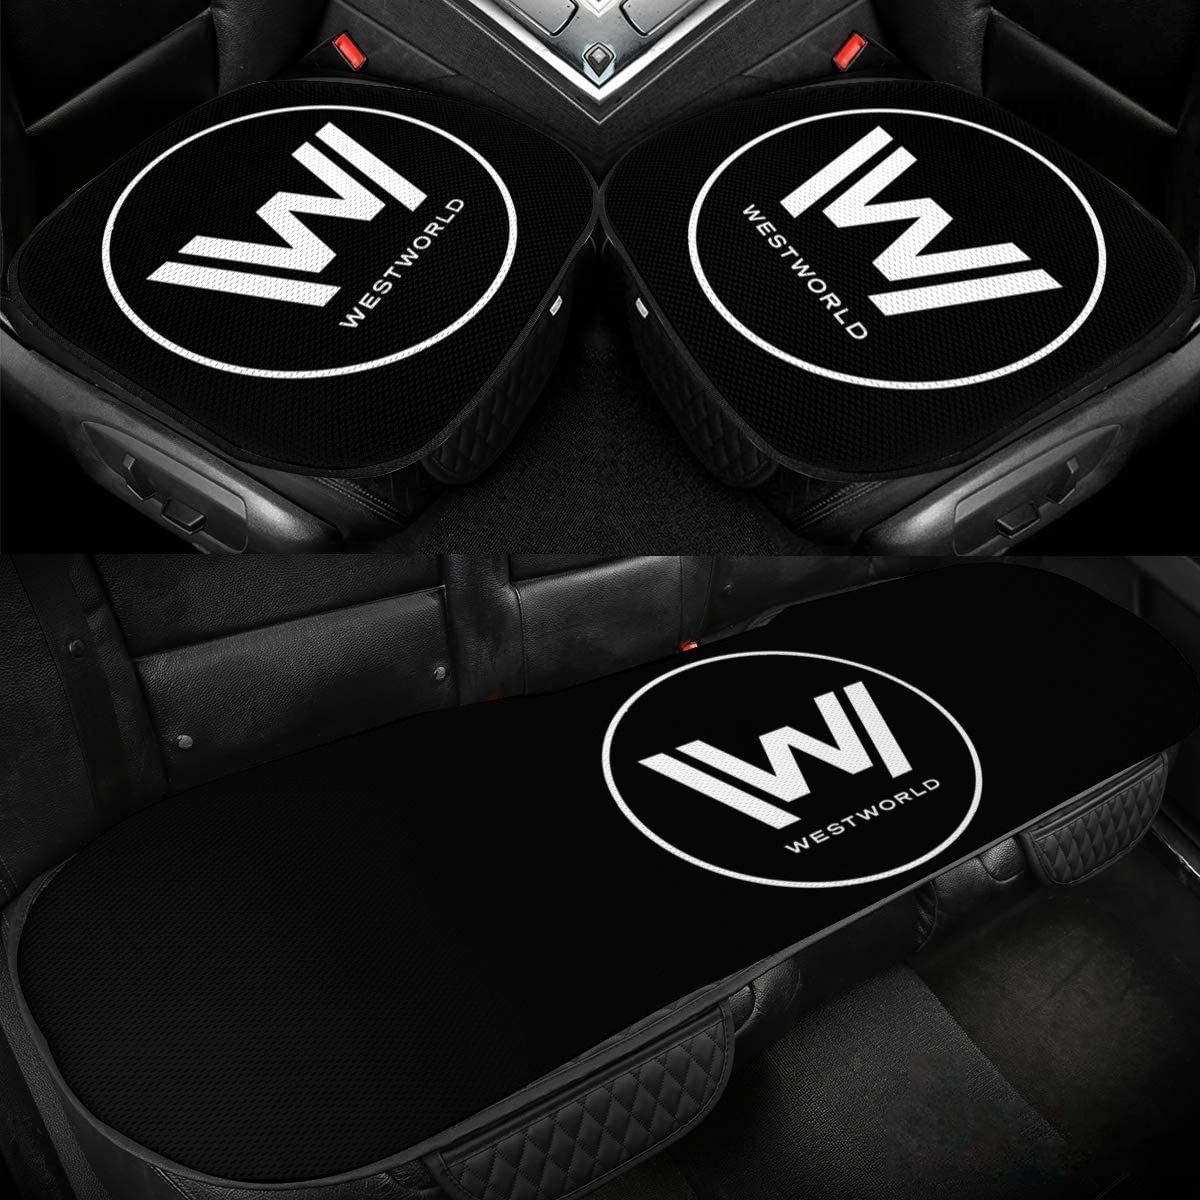 Westworld Car Ice Cushion Car Seat Cover Cushion Ice Silk Breathable Cushion, Car Rear Seat Cover, Driverâ€s Seat Cushion, Used to Relieve Back Pain